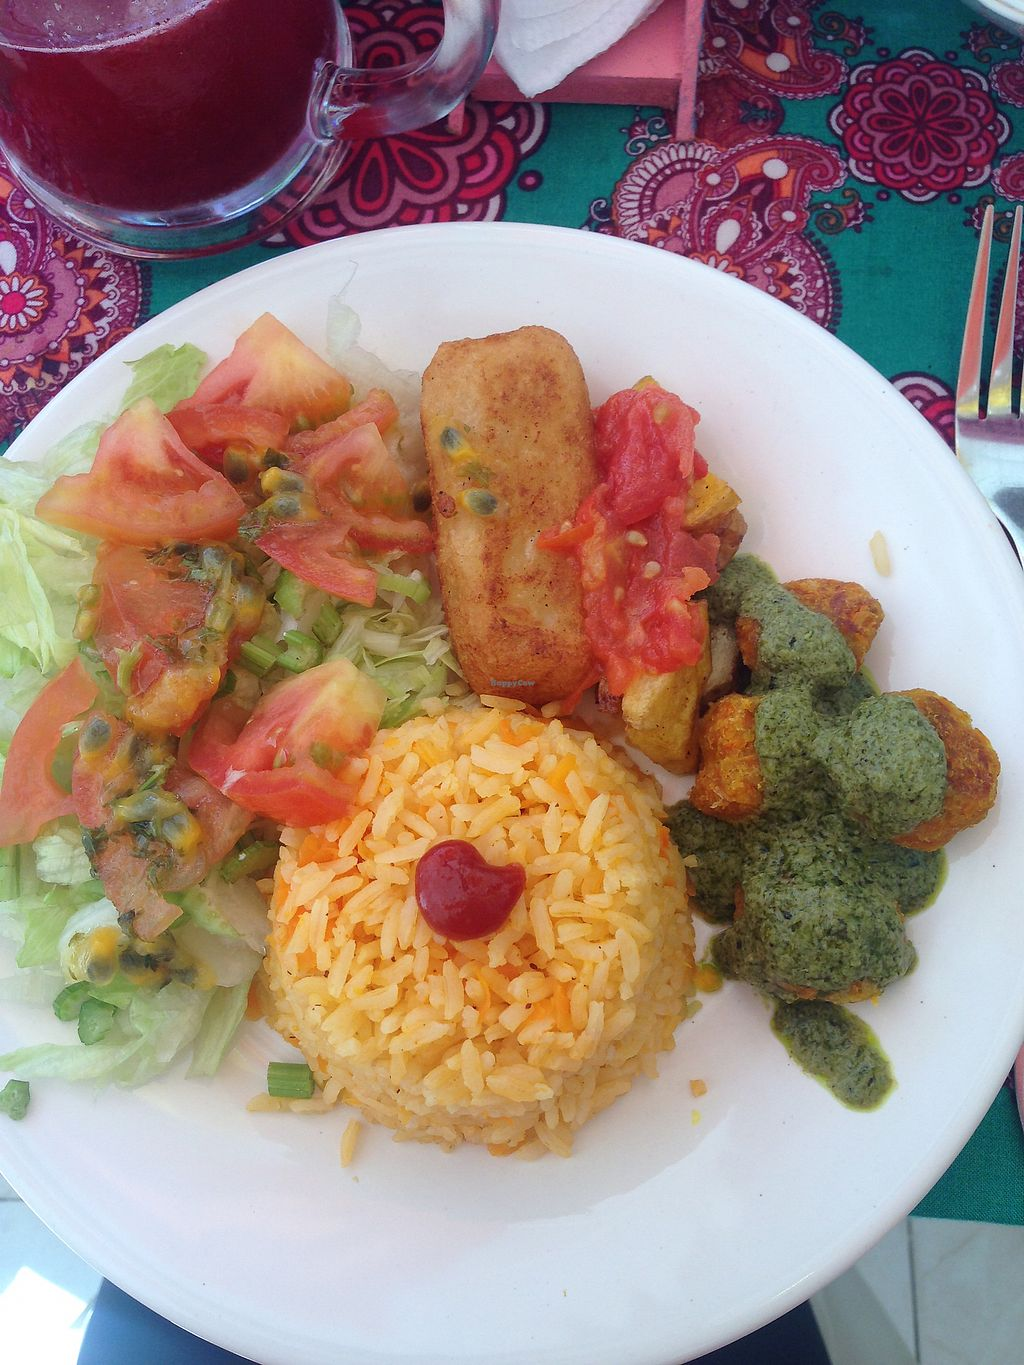 """Photo of Govinda's  by <a href=""""/members/profile/Sezbakes"""">Sezbakes</a> <br/>Rice salad yuka and pesto <br/> October 10, 2017  - <a href='/contact/abuse/image/88768/314088'>Report</a>"""